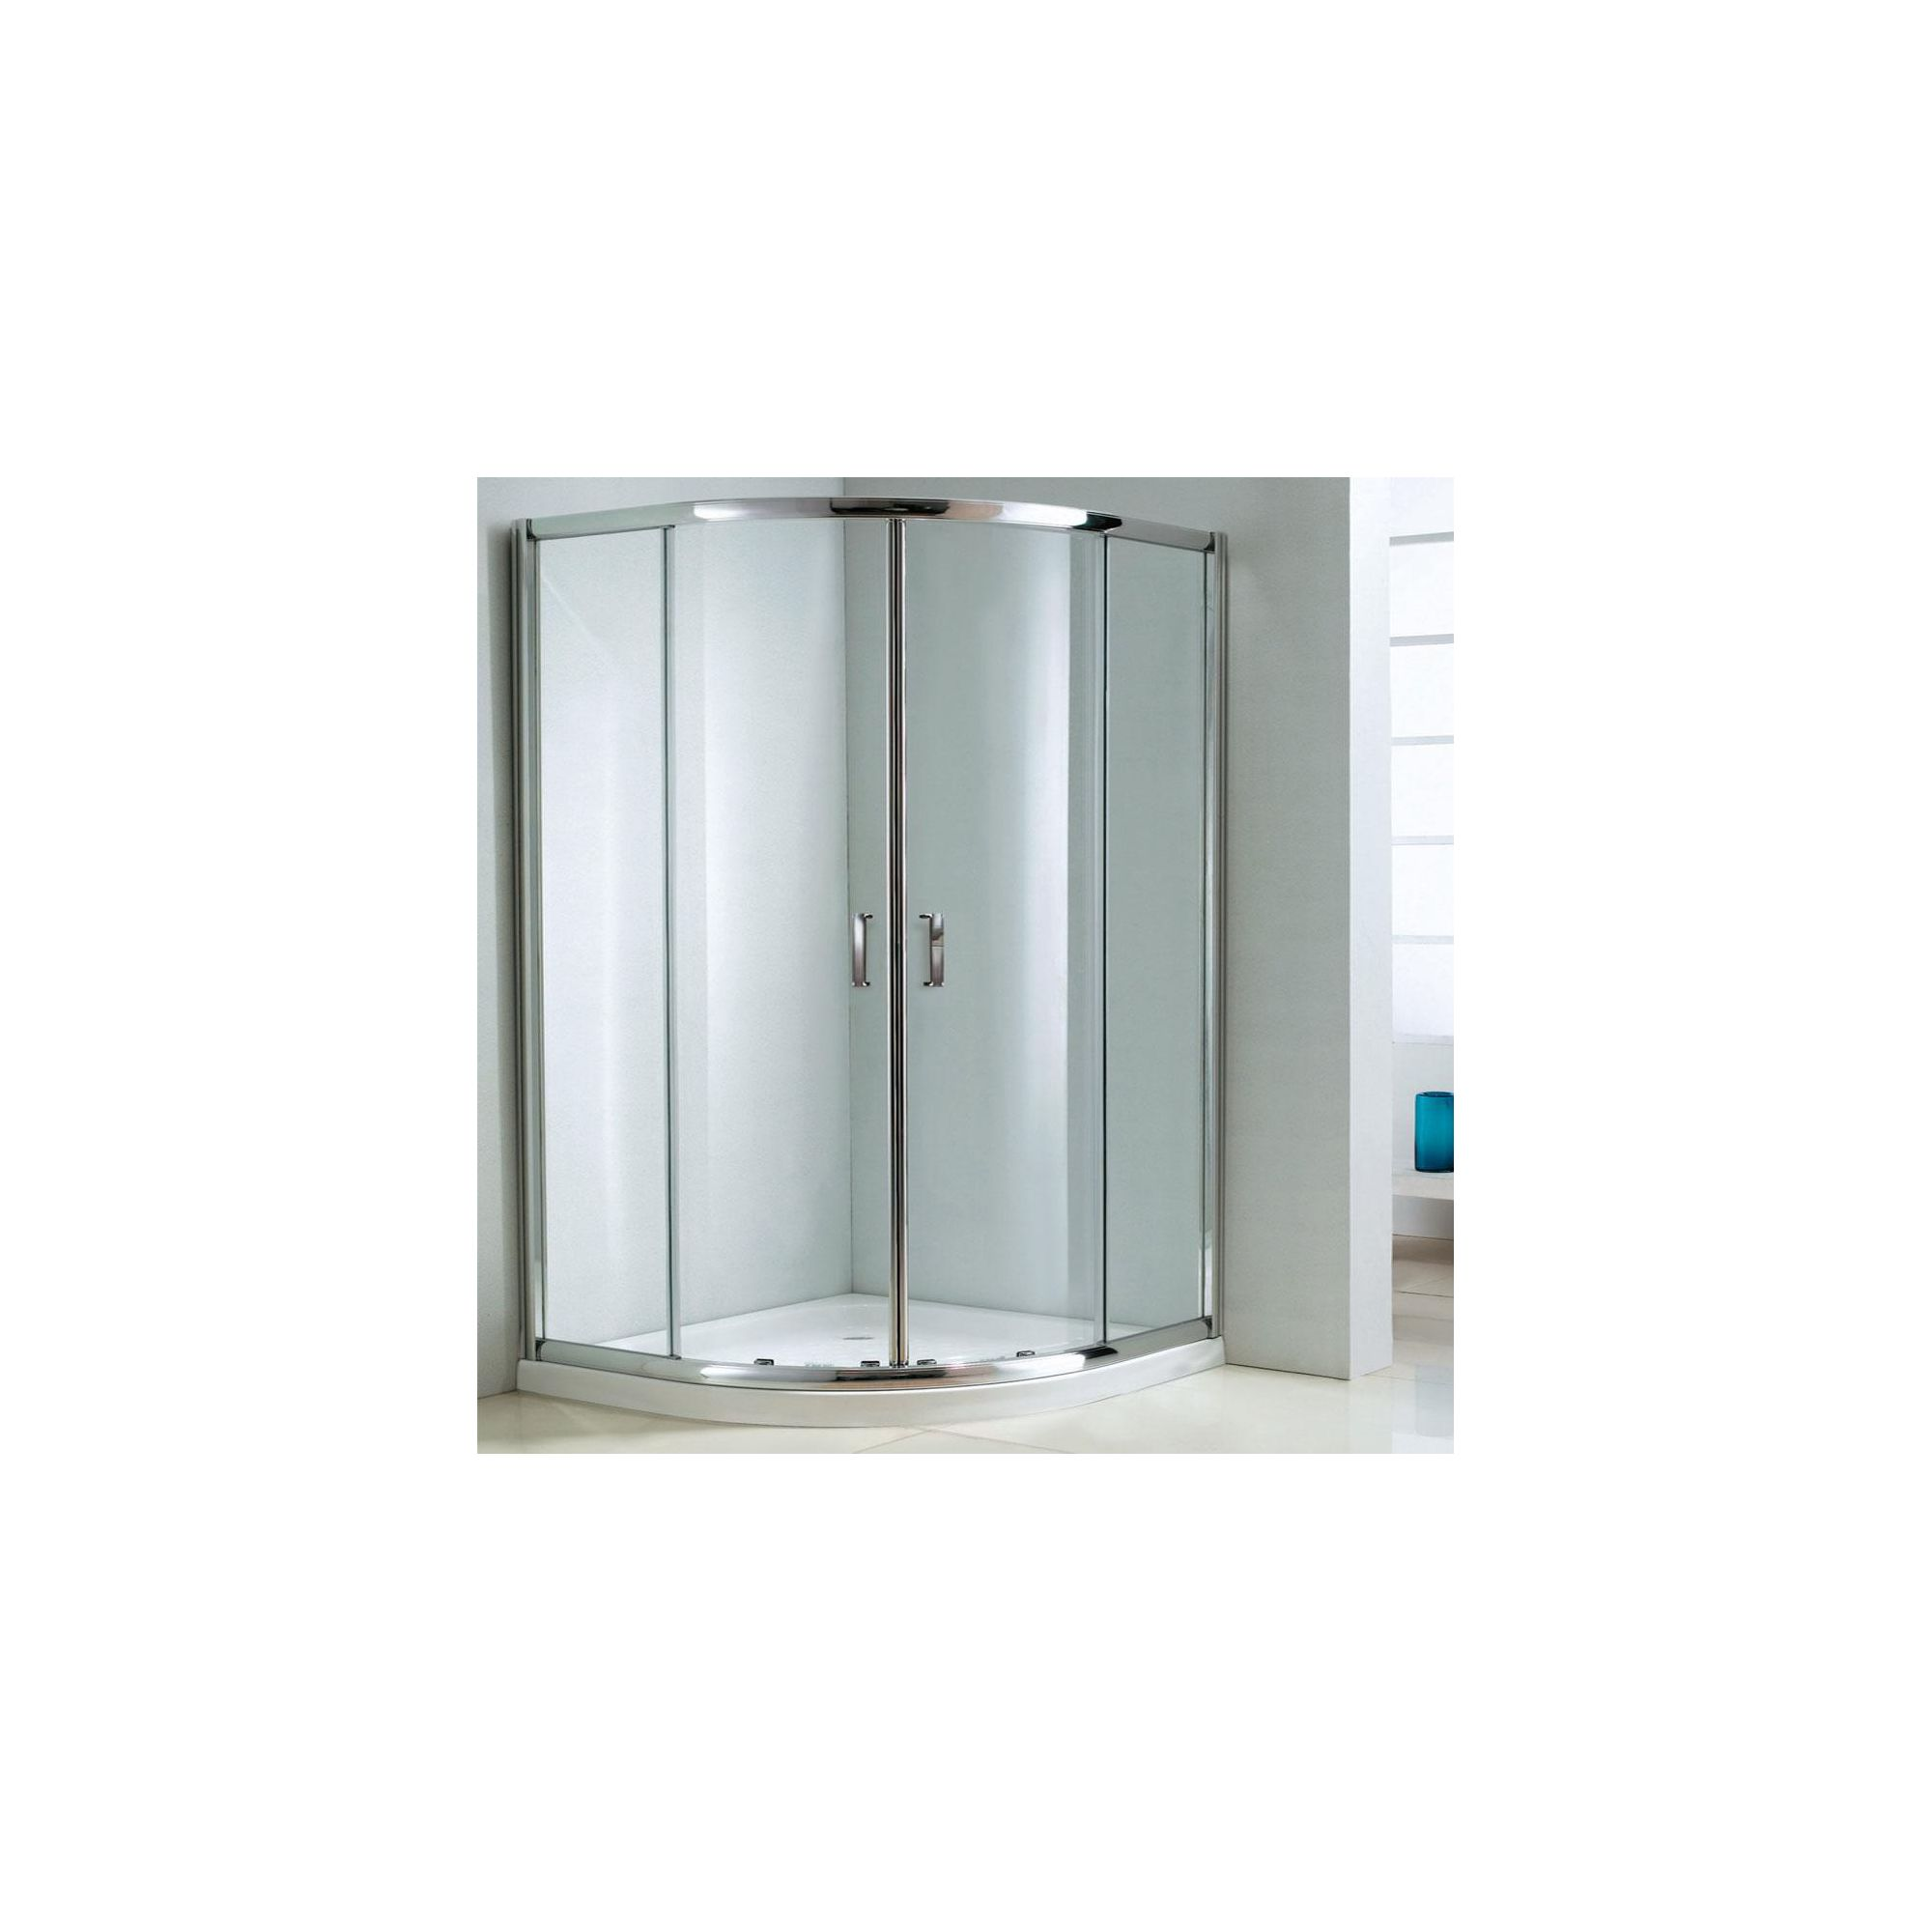 Duchy Style Double Quadrant Door Shower Enclosure, 900mm x 900mm, 6mm Glass, Low Profile Tray at Tesco Direct